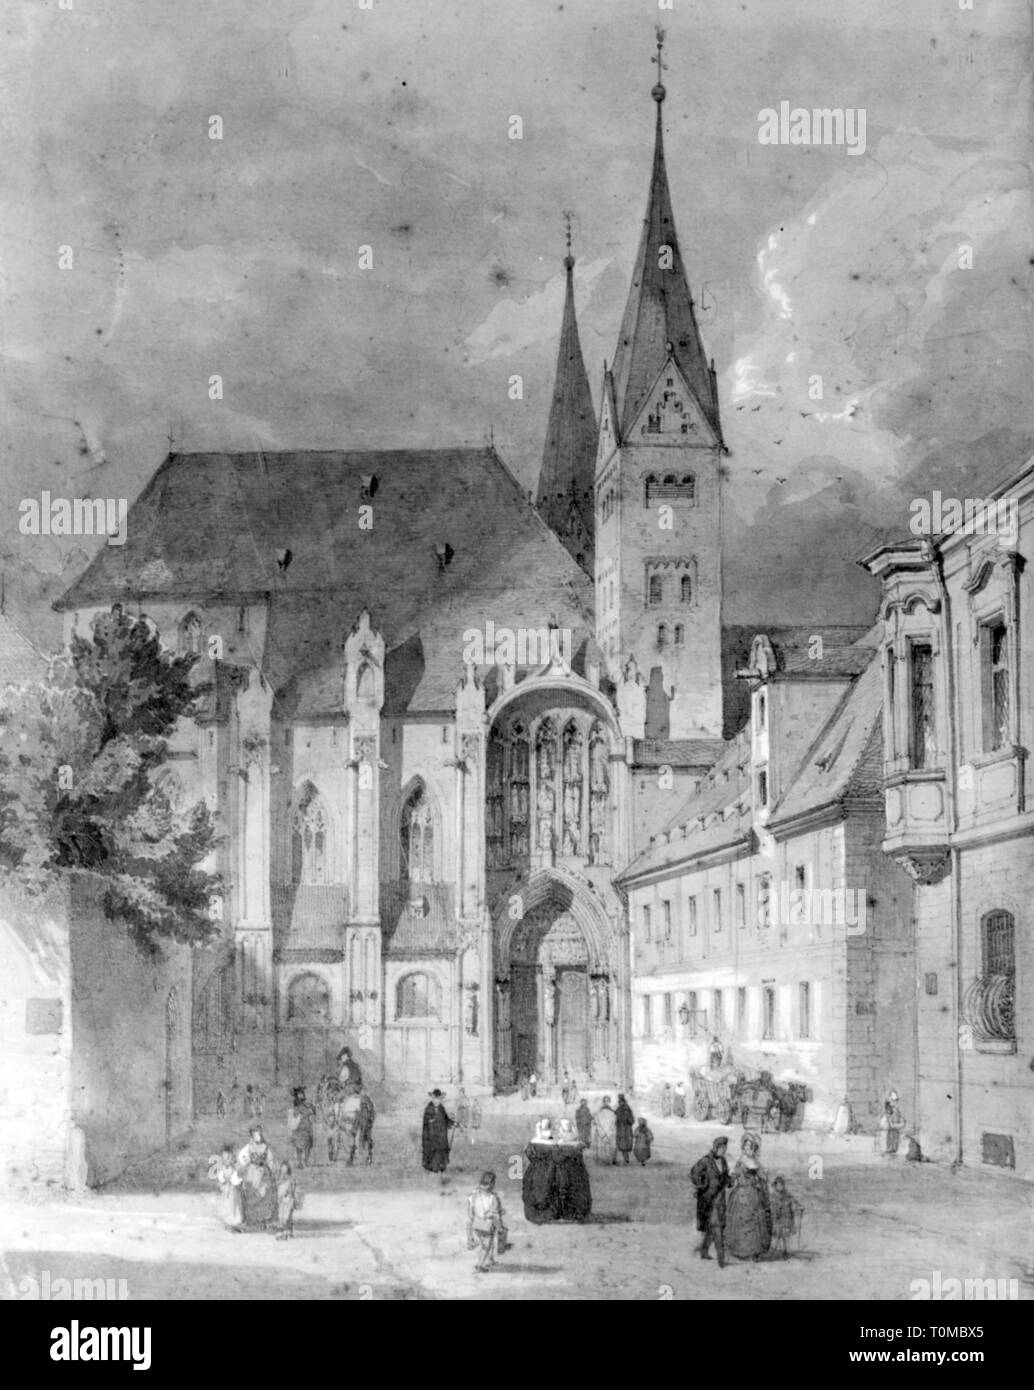 geography / travel, Germany, Augsburg, churches, cathedral of Our Blessed Lady, exterior view, lithograph by Eduard Gerhardt, mid 19th century, city, Frauenkirche (Church of Our Lady), St. Mary's Church, St. Mary's Cathedral, Saint Mary, Our Lady, the Blessed Virgin Mary, the Virgin Mary, Our Blessed Lady, steeple, church tower, steeples, church towers, Swabia, Kingdom of Bavaria, Central Europe, people, community, communities, churches, church, cathedral, cathedrals, loving, love, woman, women, historic, historical, Additional-Rights-Clearance-Info-Not-Available - Stock Image